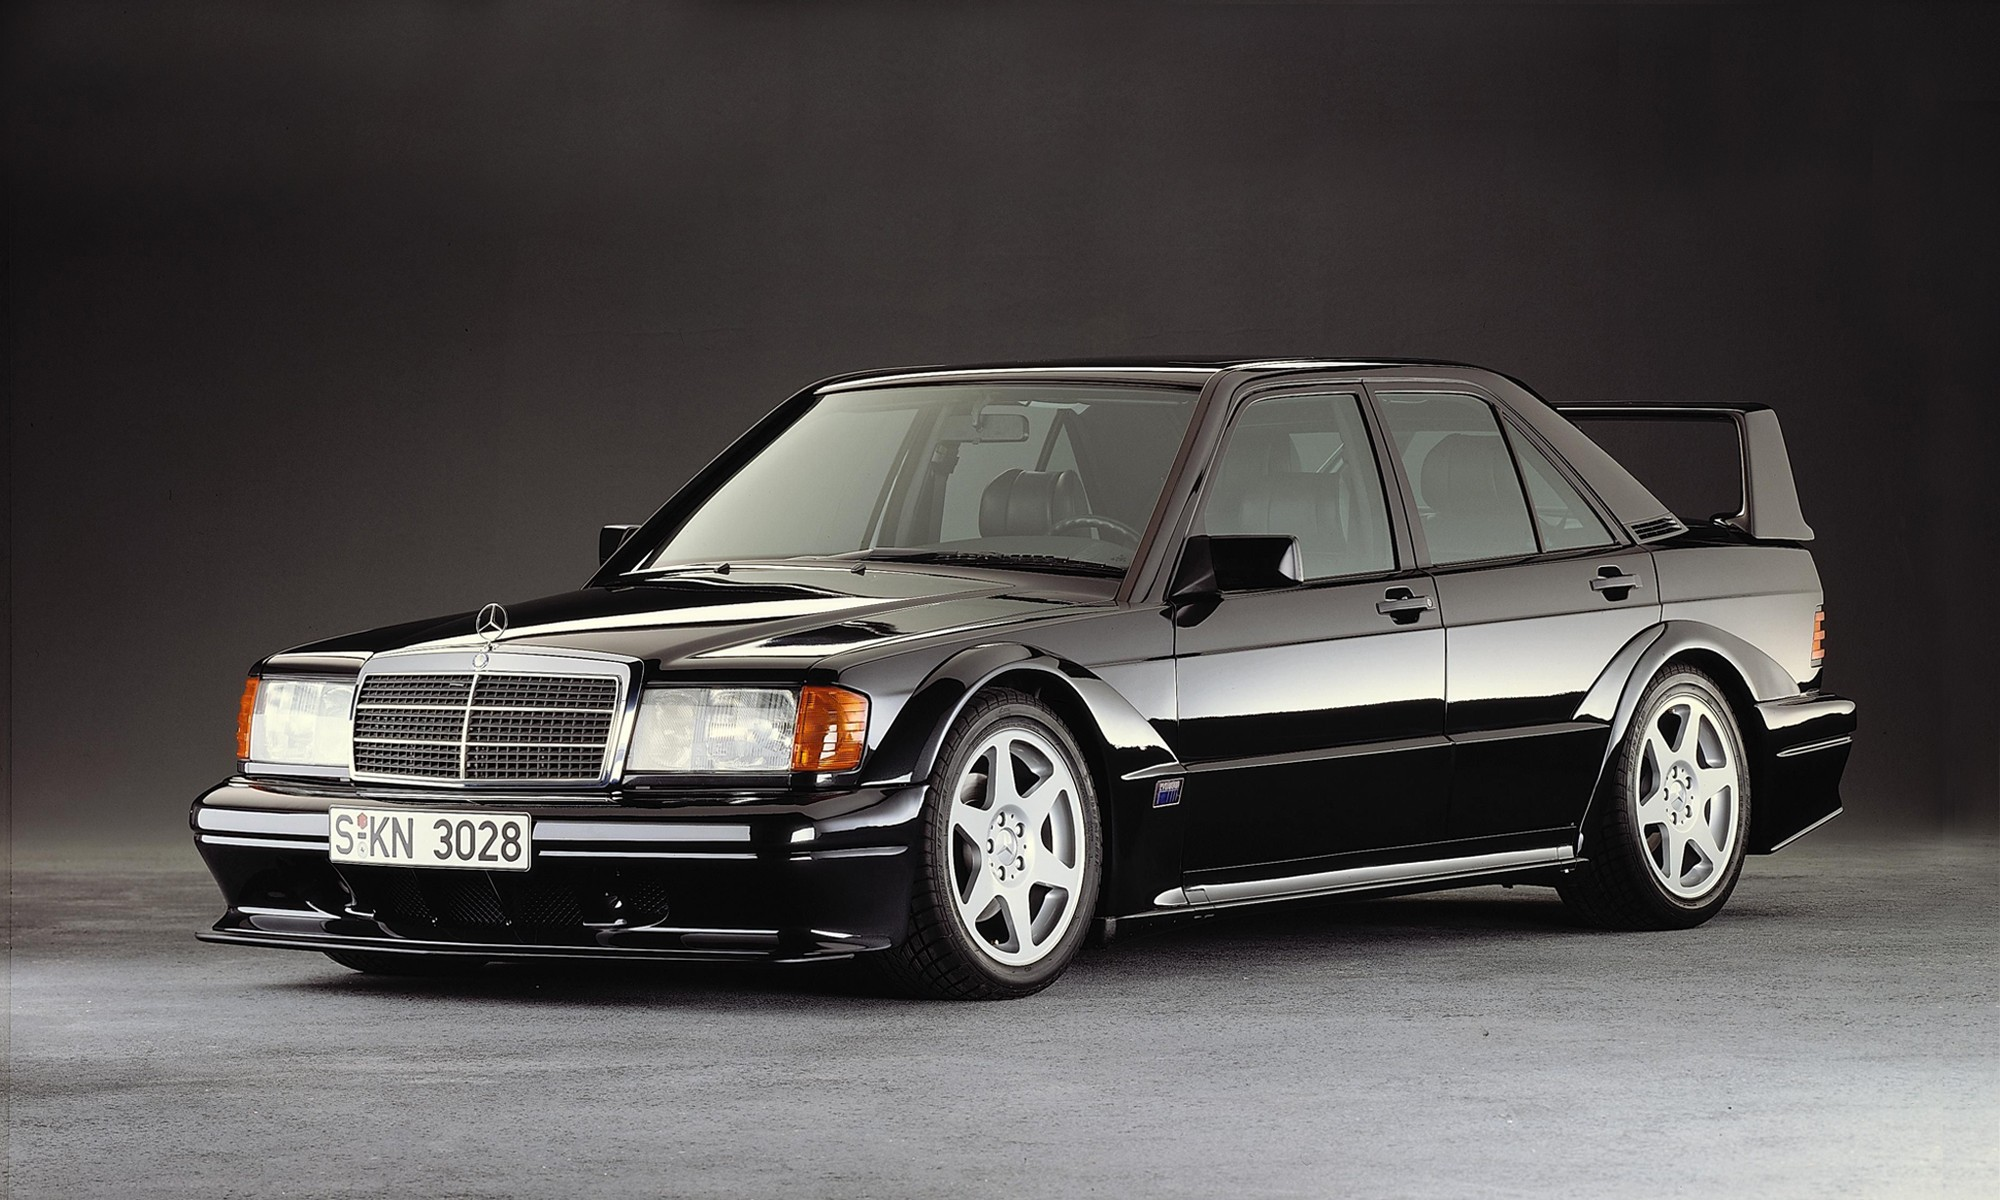 The Mercedes-Benz 190E Evo was a road-going racecar